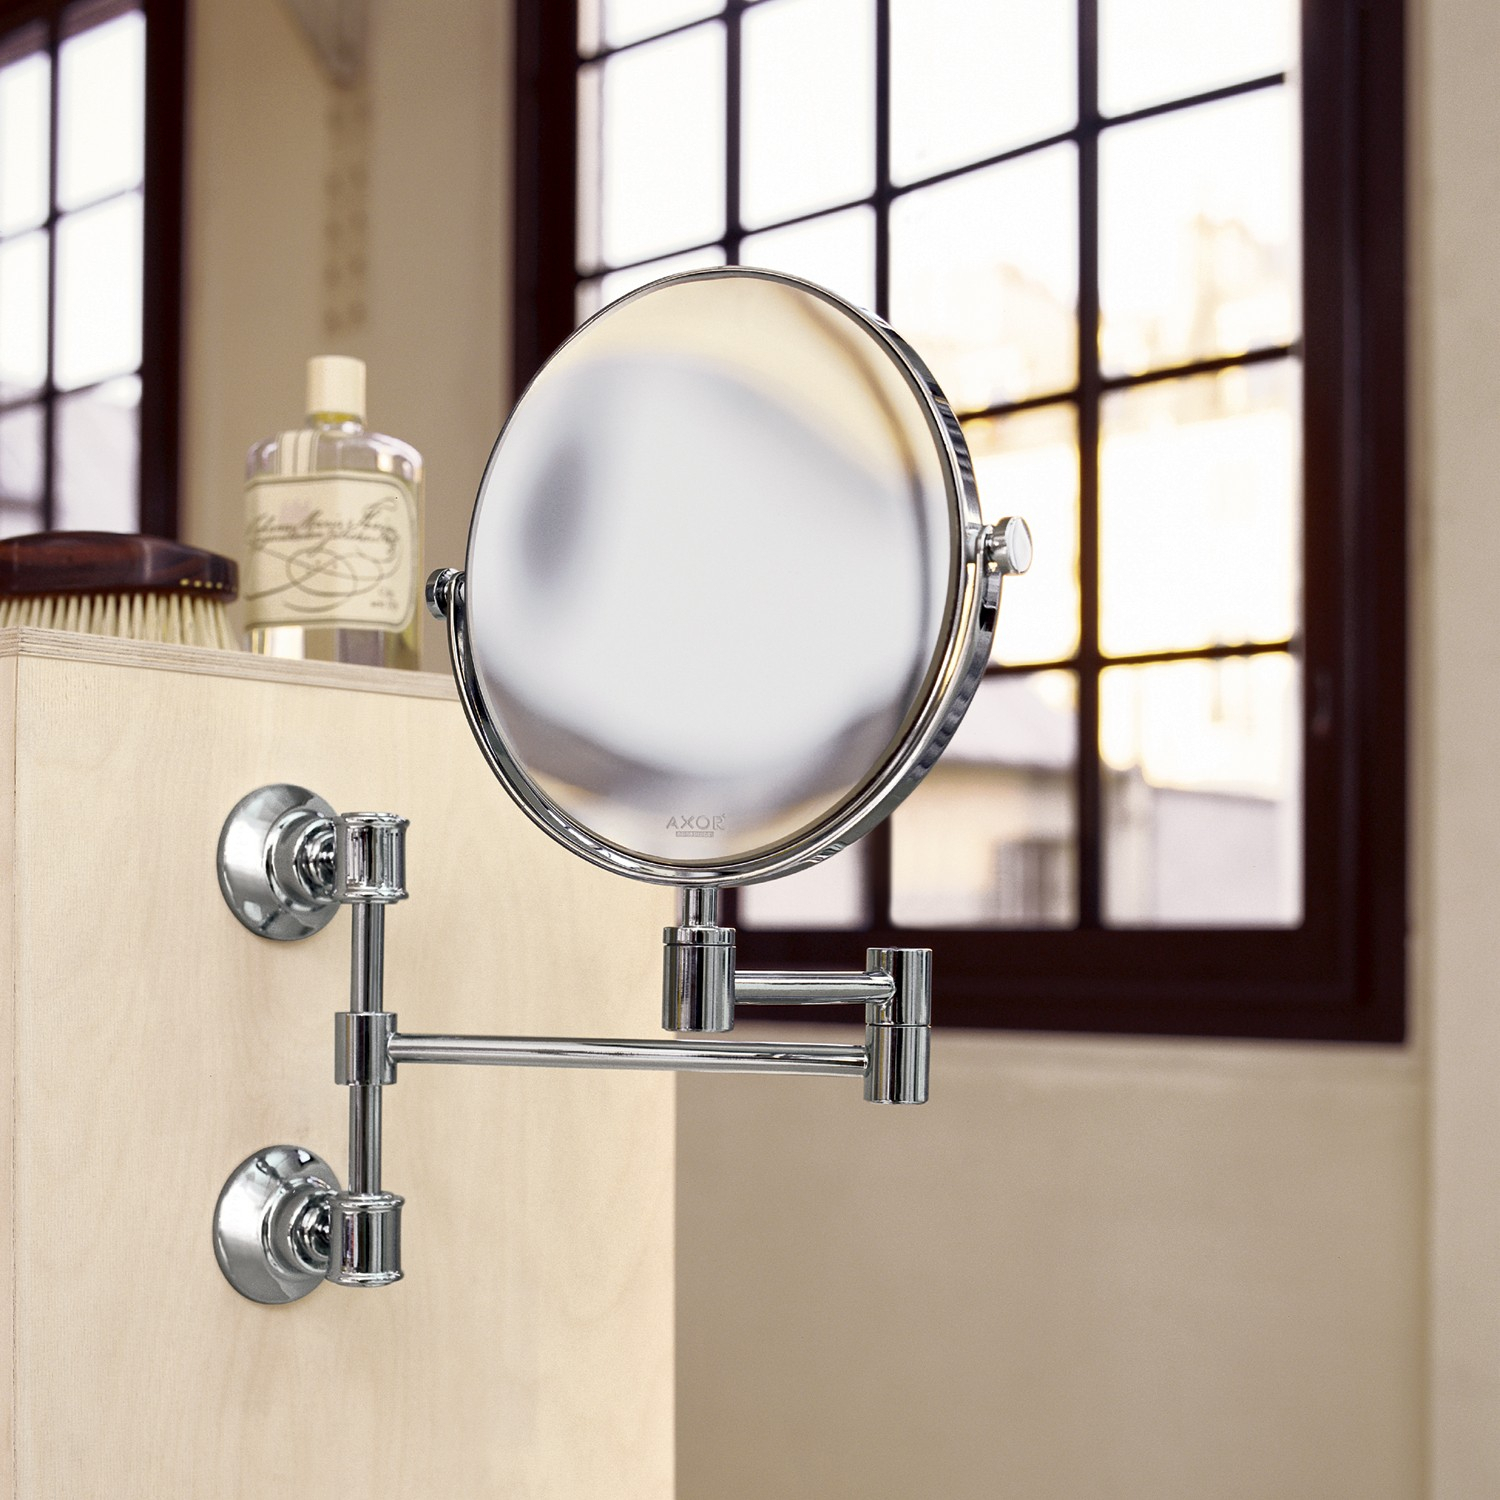 34 Most Great Large Framed Bathroom Mirrors Mirror Cabinet Inside Traditional Square Glass Wall Mirrors (View 19 of 30)